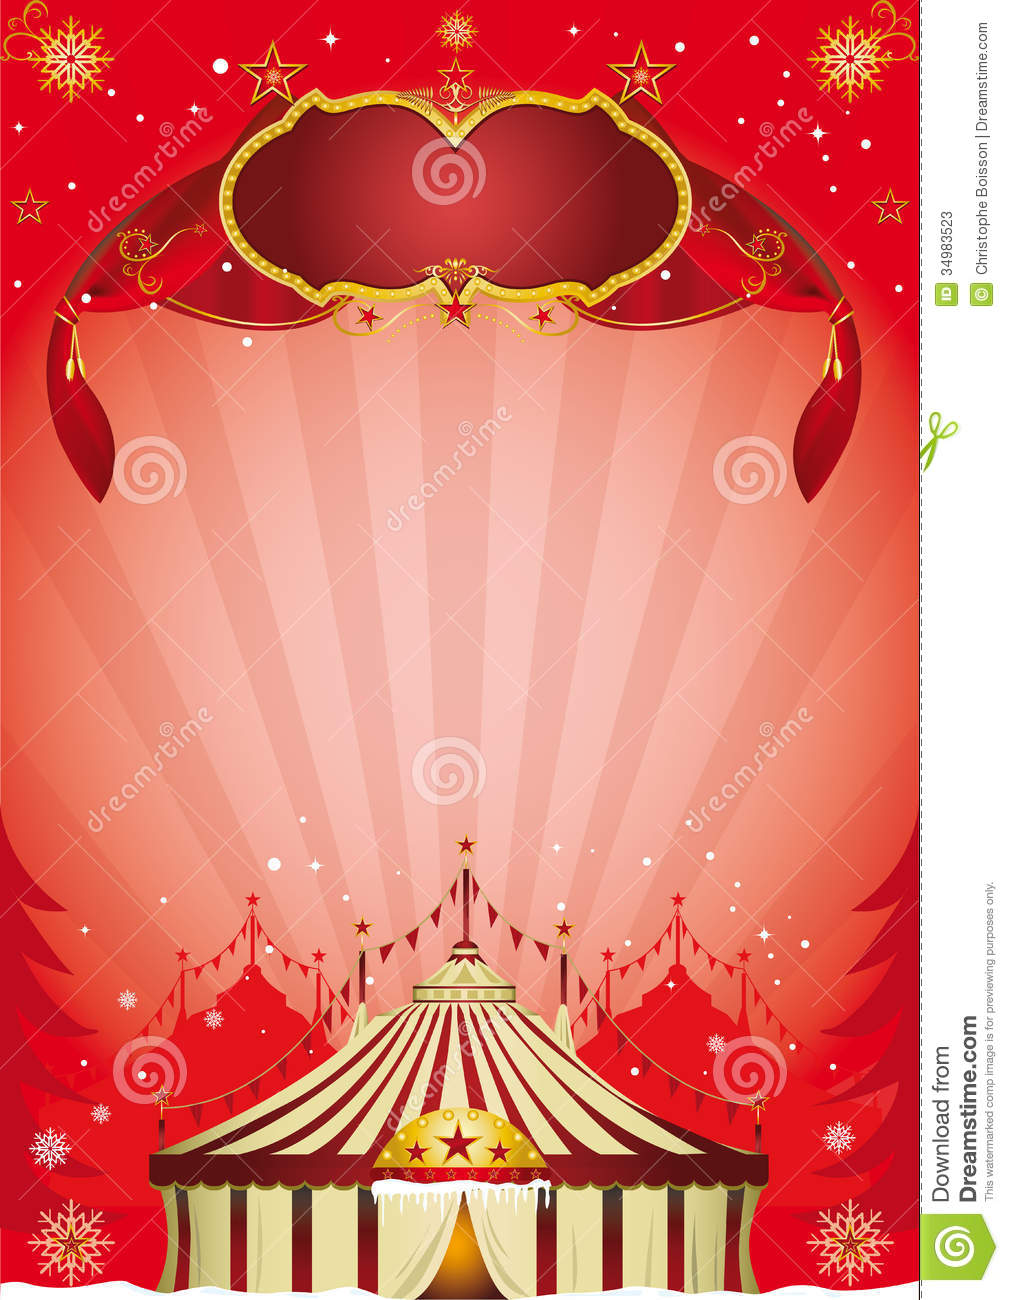 Xmas Circus Poster Stock Photos - Image: 34983523